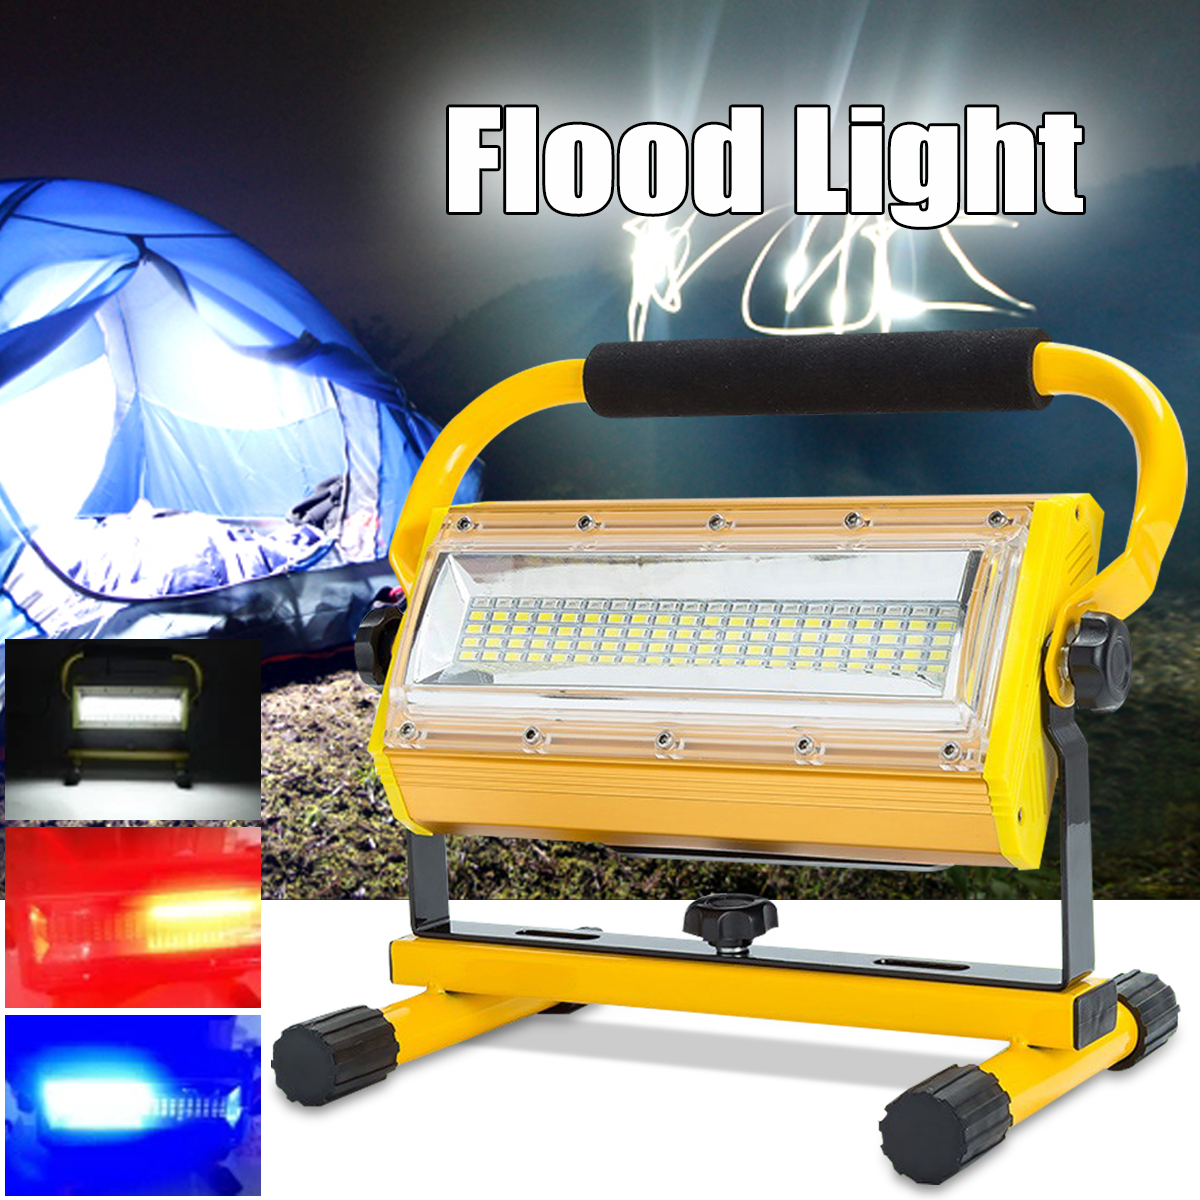 100W 60 LED Portable Rechargeable Flood Light Spot Flashlight Work Light Camping Outdoor Lamp cob led flood light dimmable 100w portable led floodlight cordless work light rechargeable spot outdoor working camping lamp